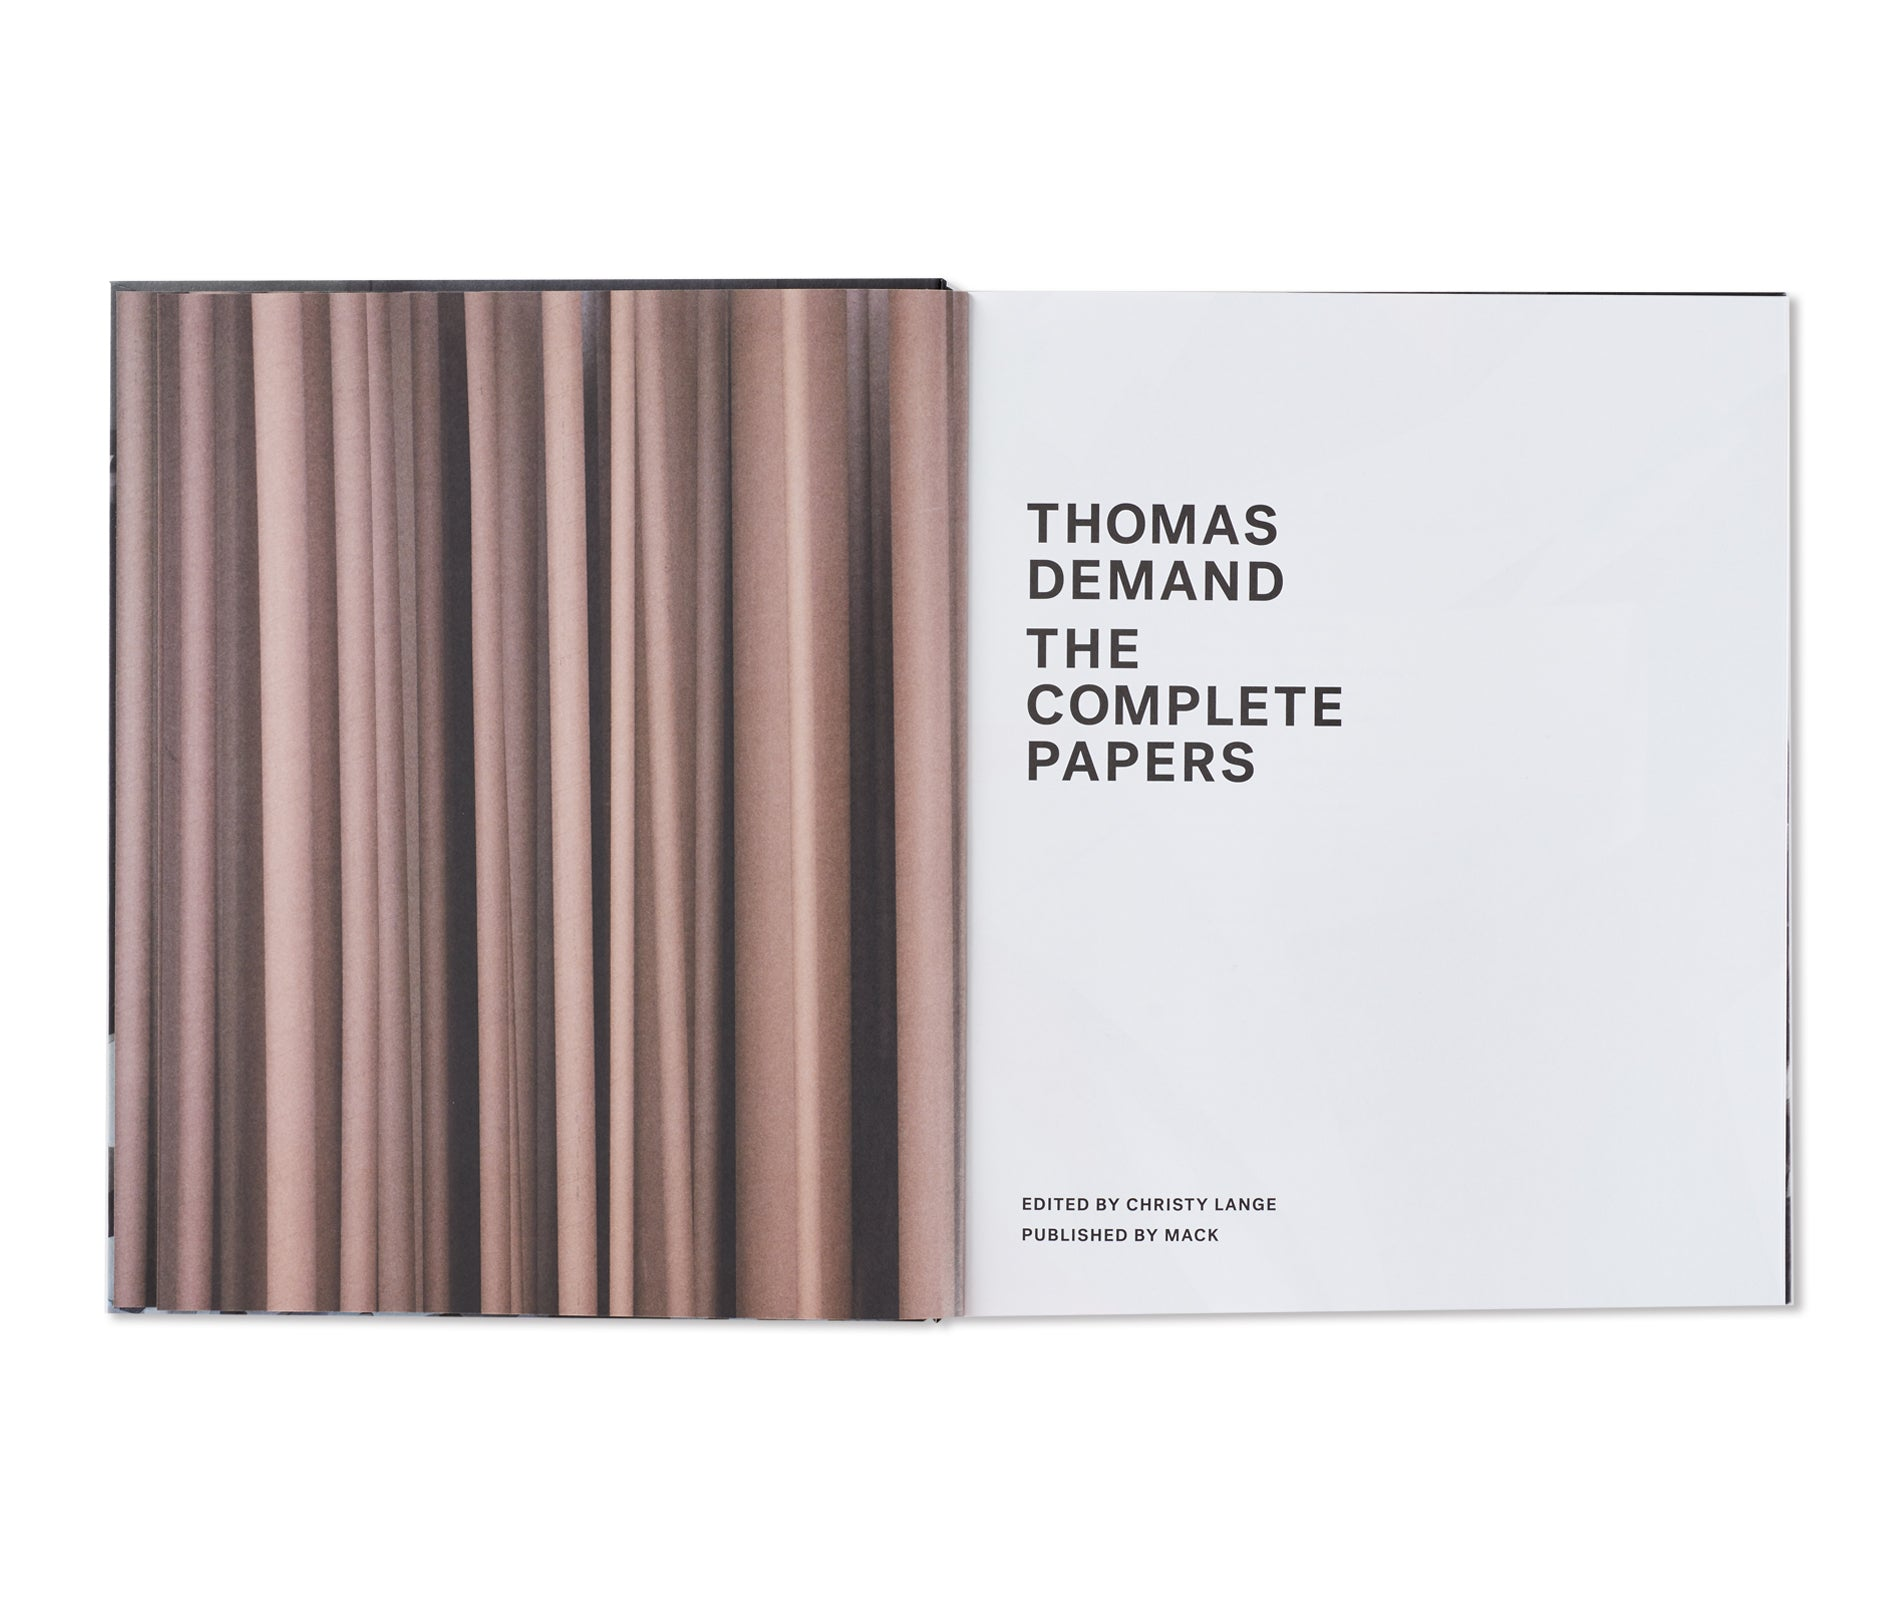 THE COMPLETE PAPERS by Thomas Demand